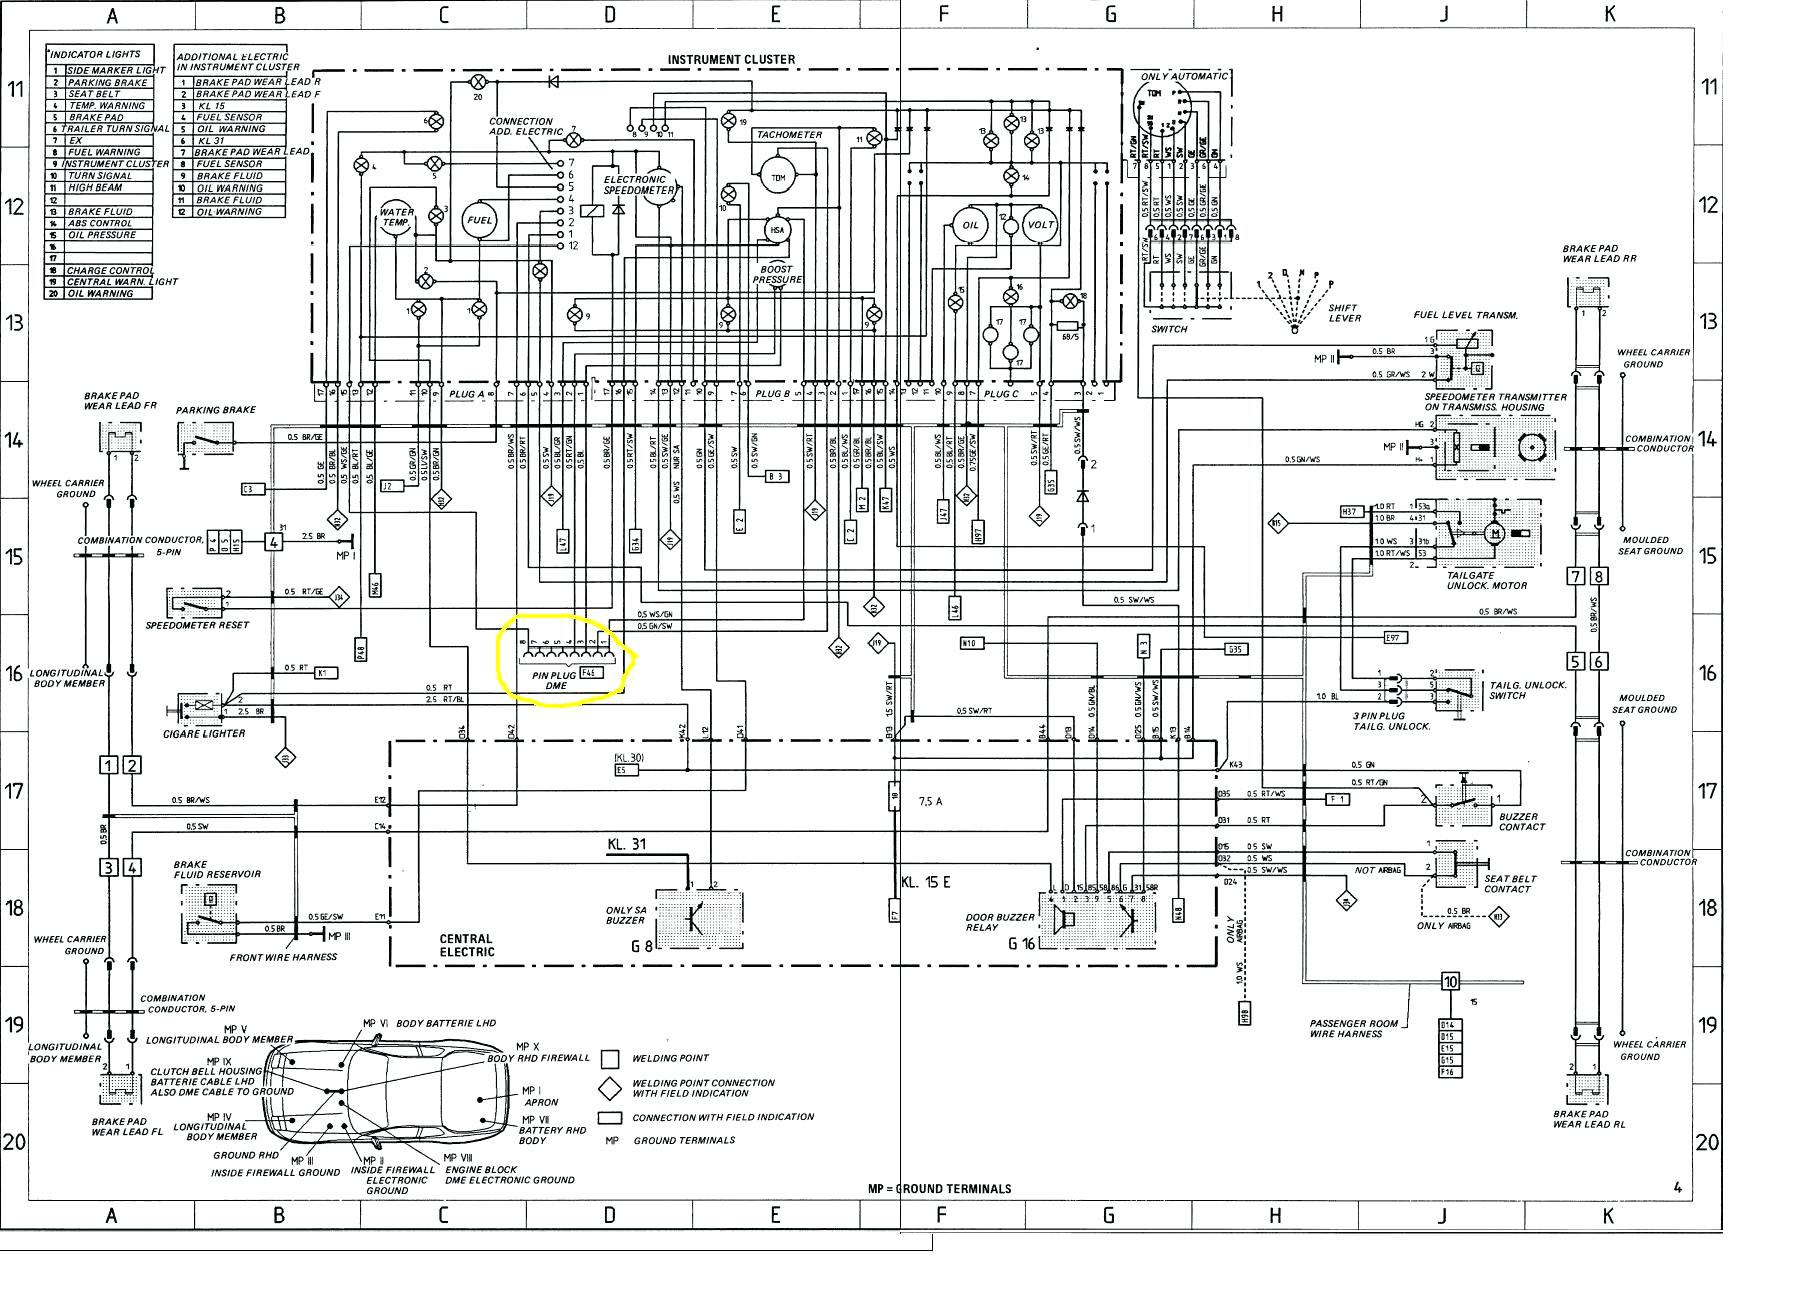 Diagram 1969 Porsche Wiring Diagram Full Version Hd Quality Wiring Diagram Wiringshopk Urbanamentevitale It